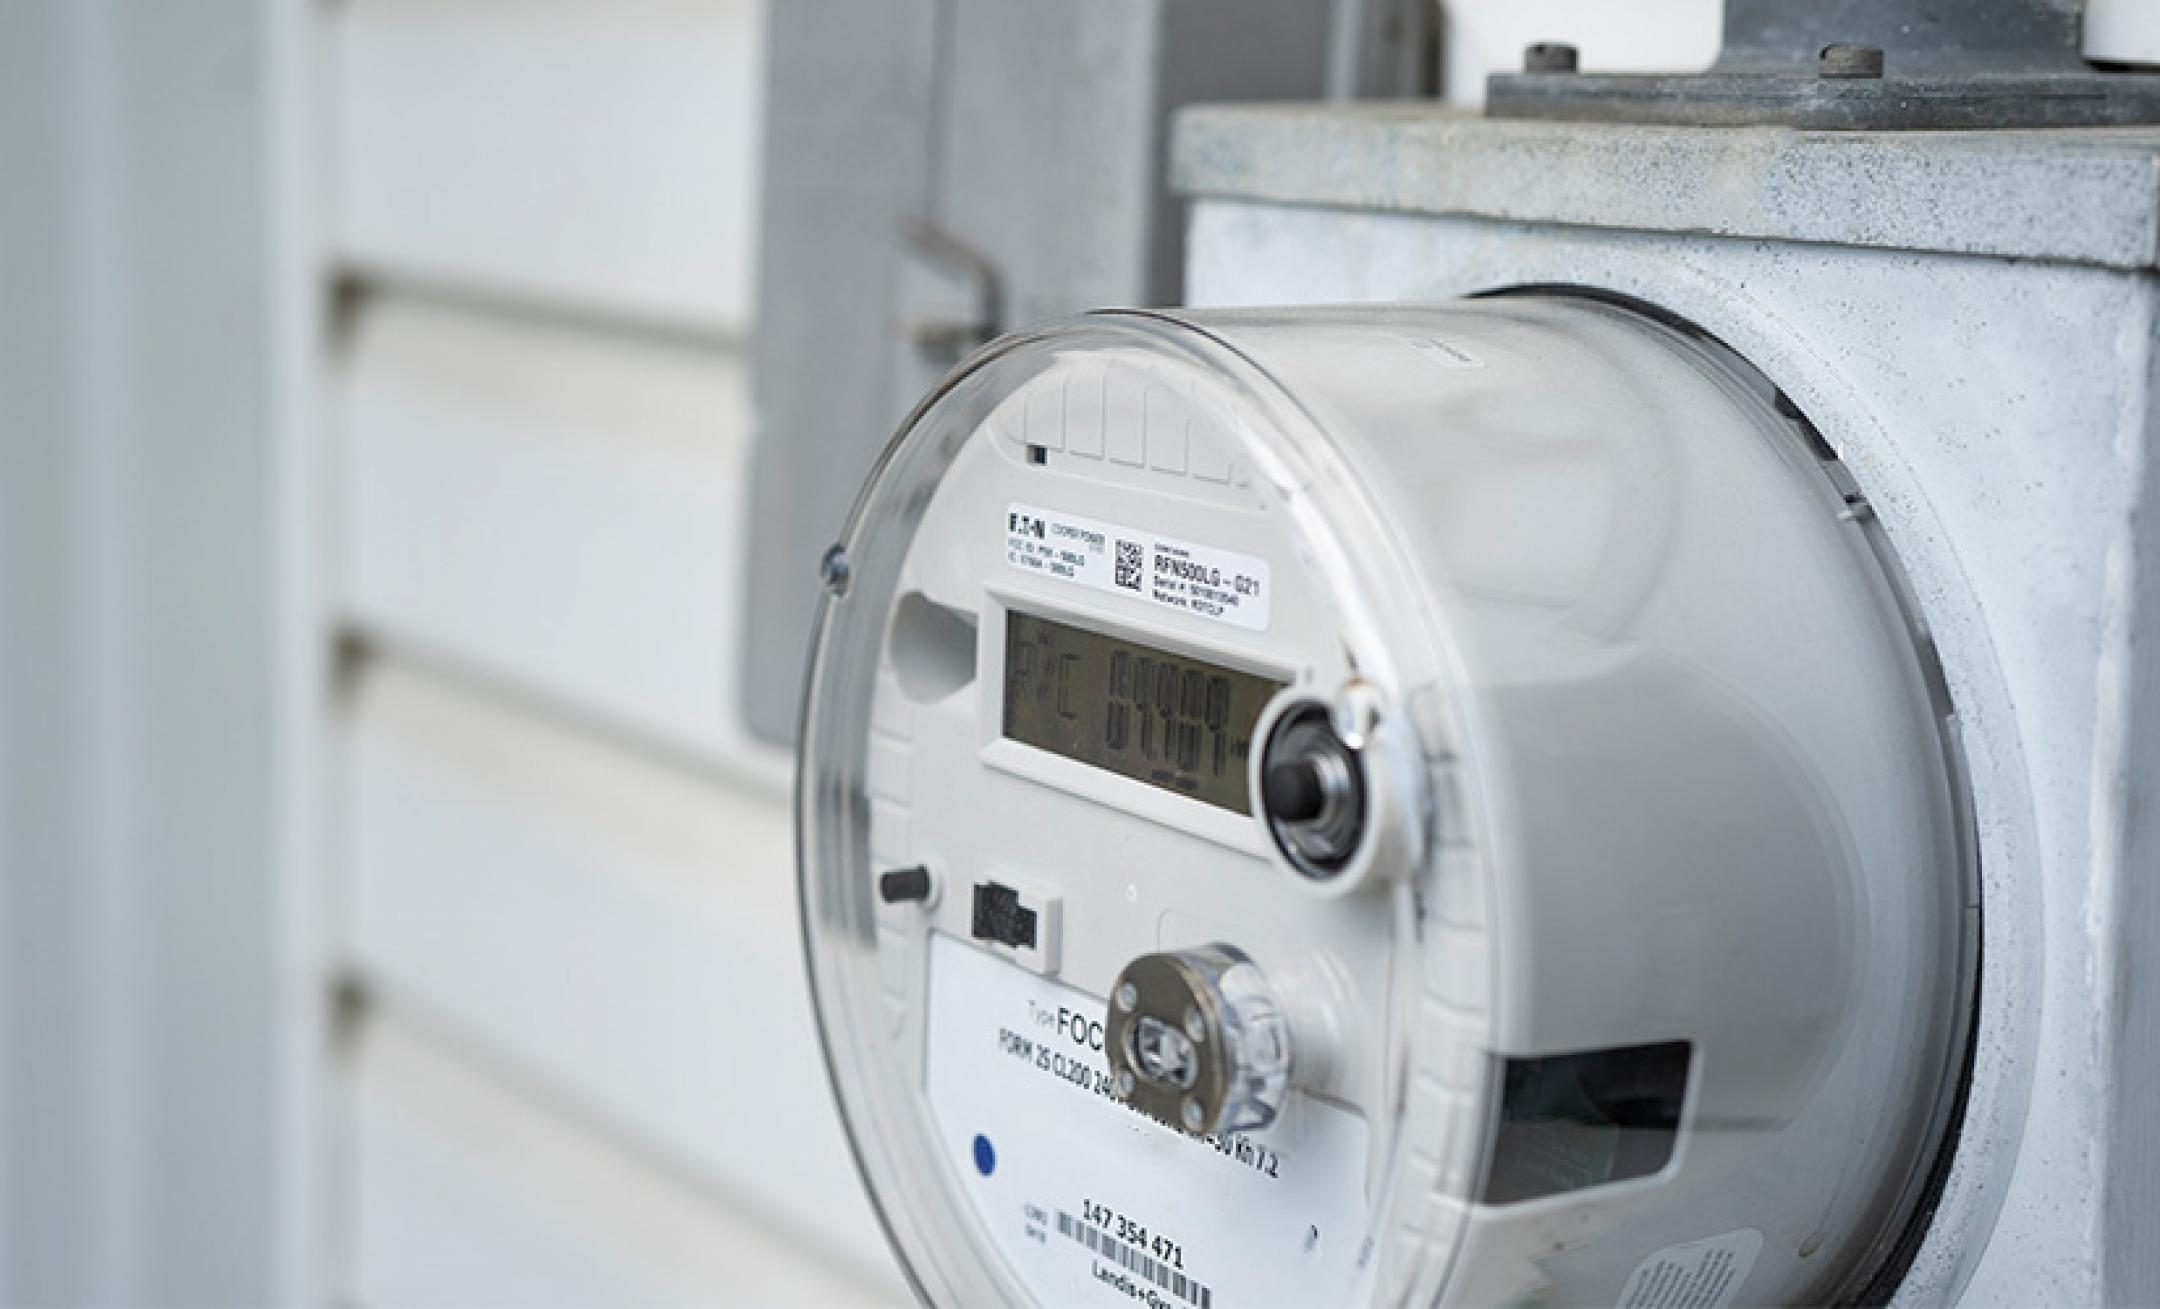 Benefits of a Smart Electricity Meter